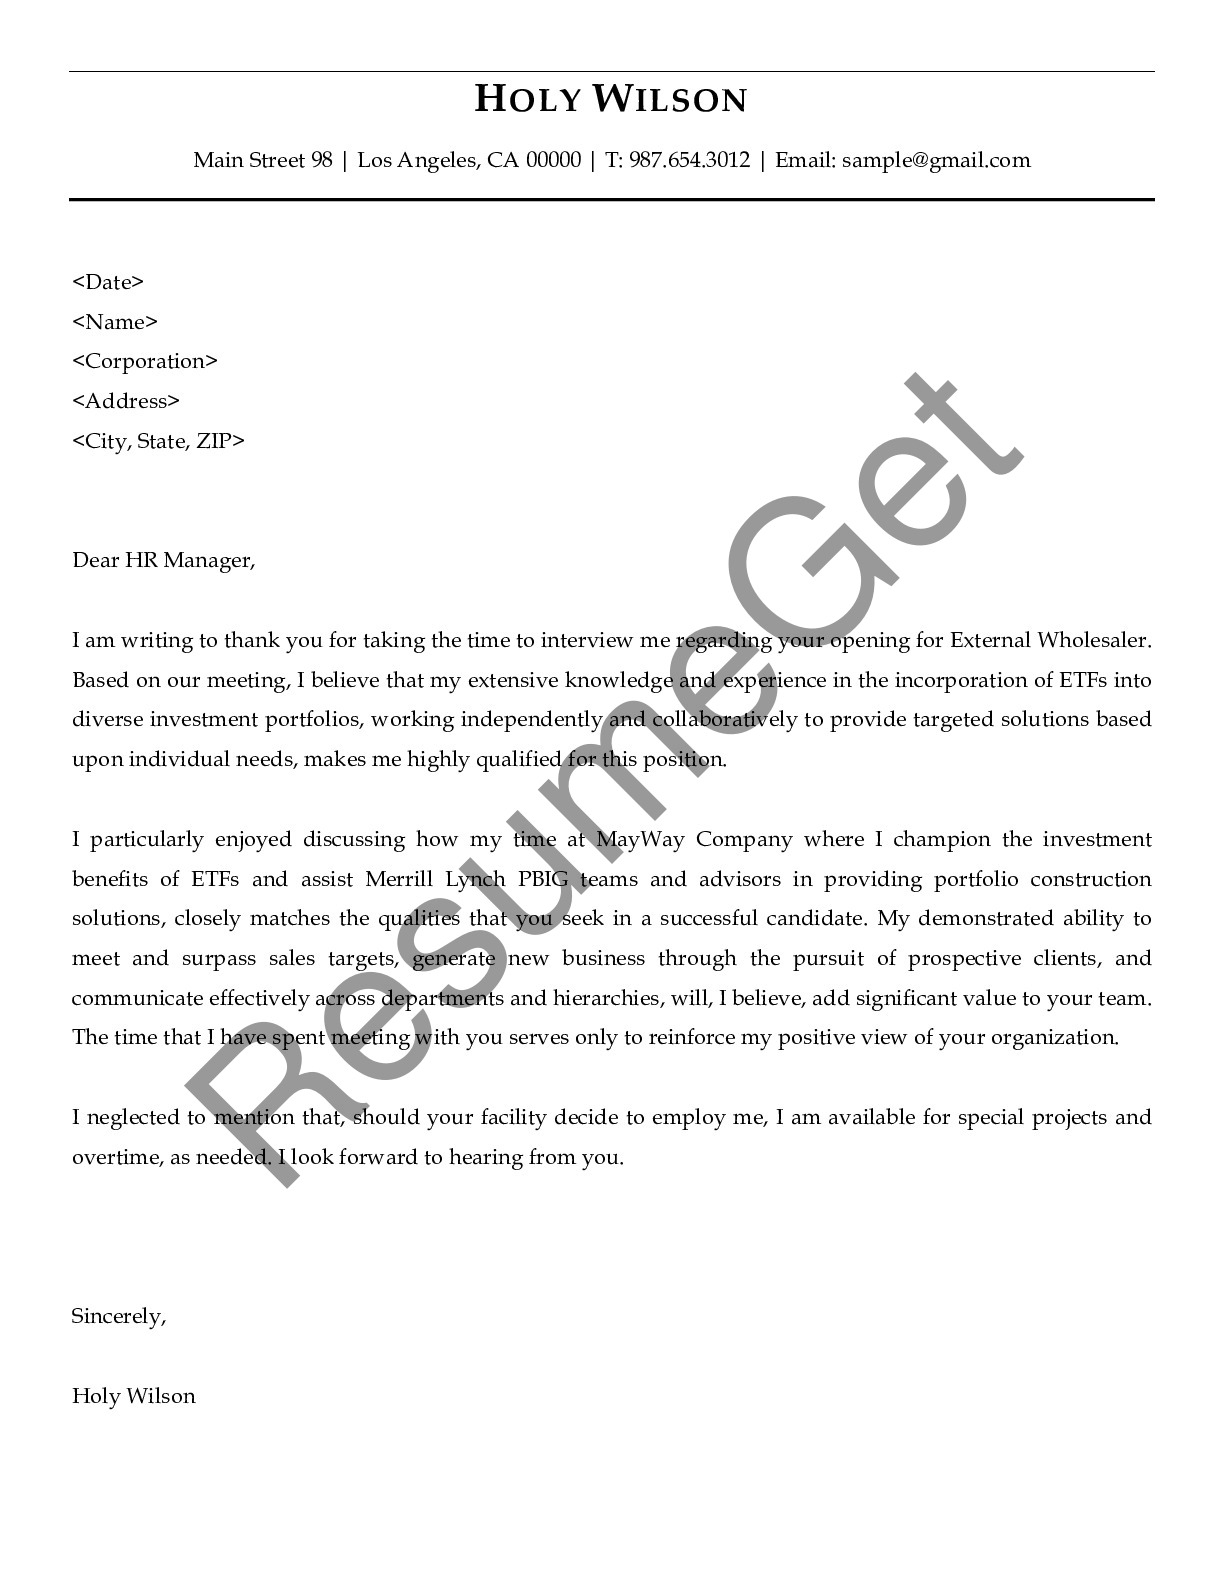 Thank You Letter for External Wholesaler